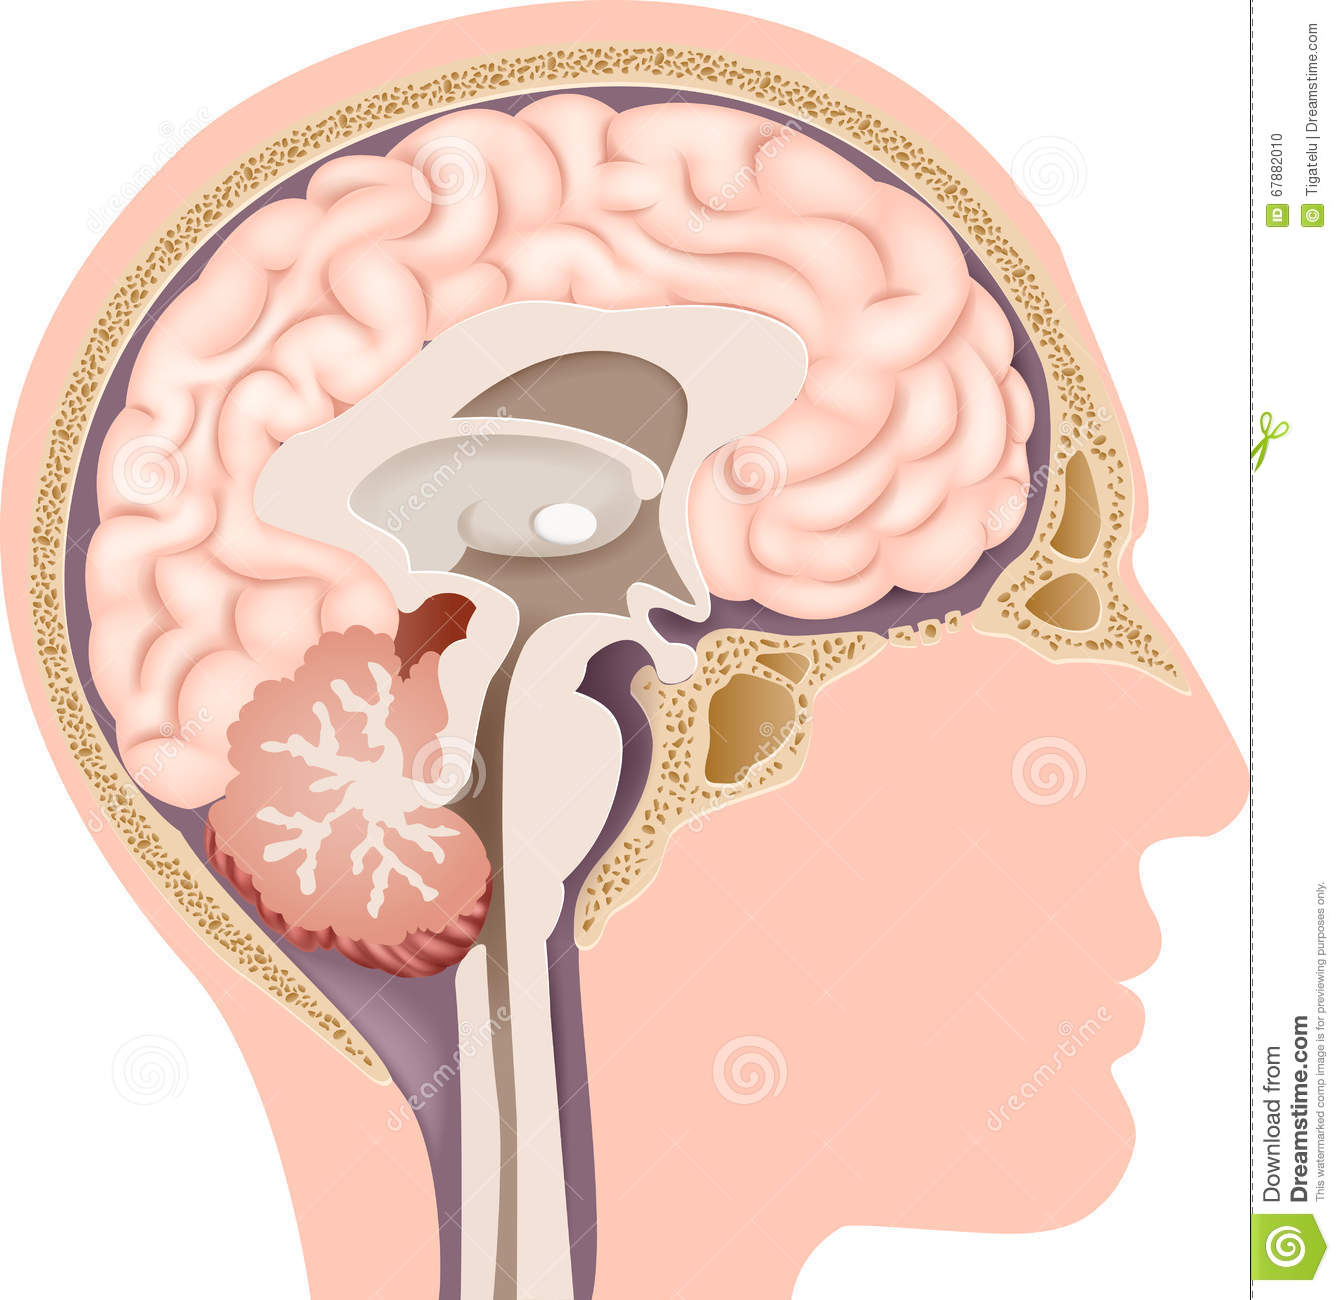 Cartoon Illustration Of Human Internal Brain Anatomy Stock Vector